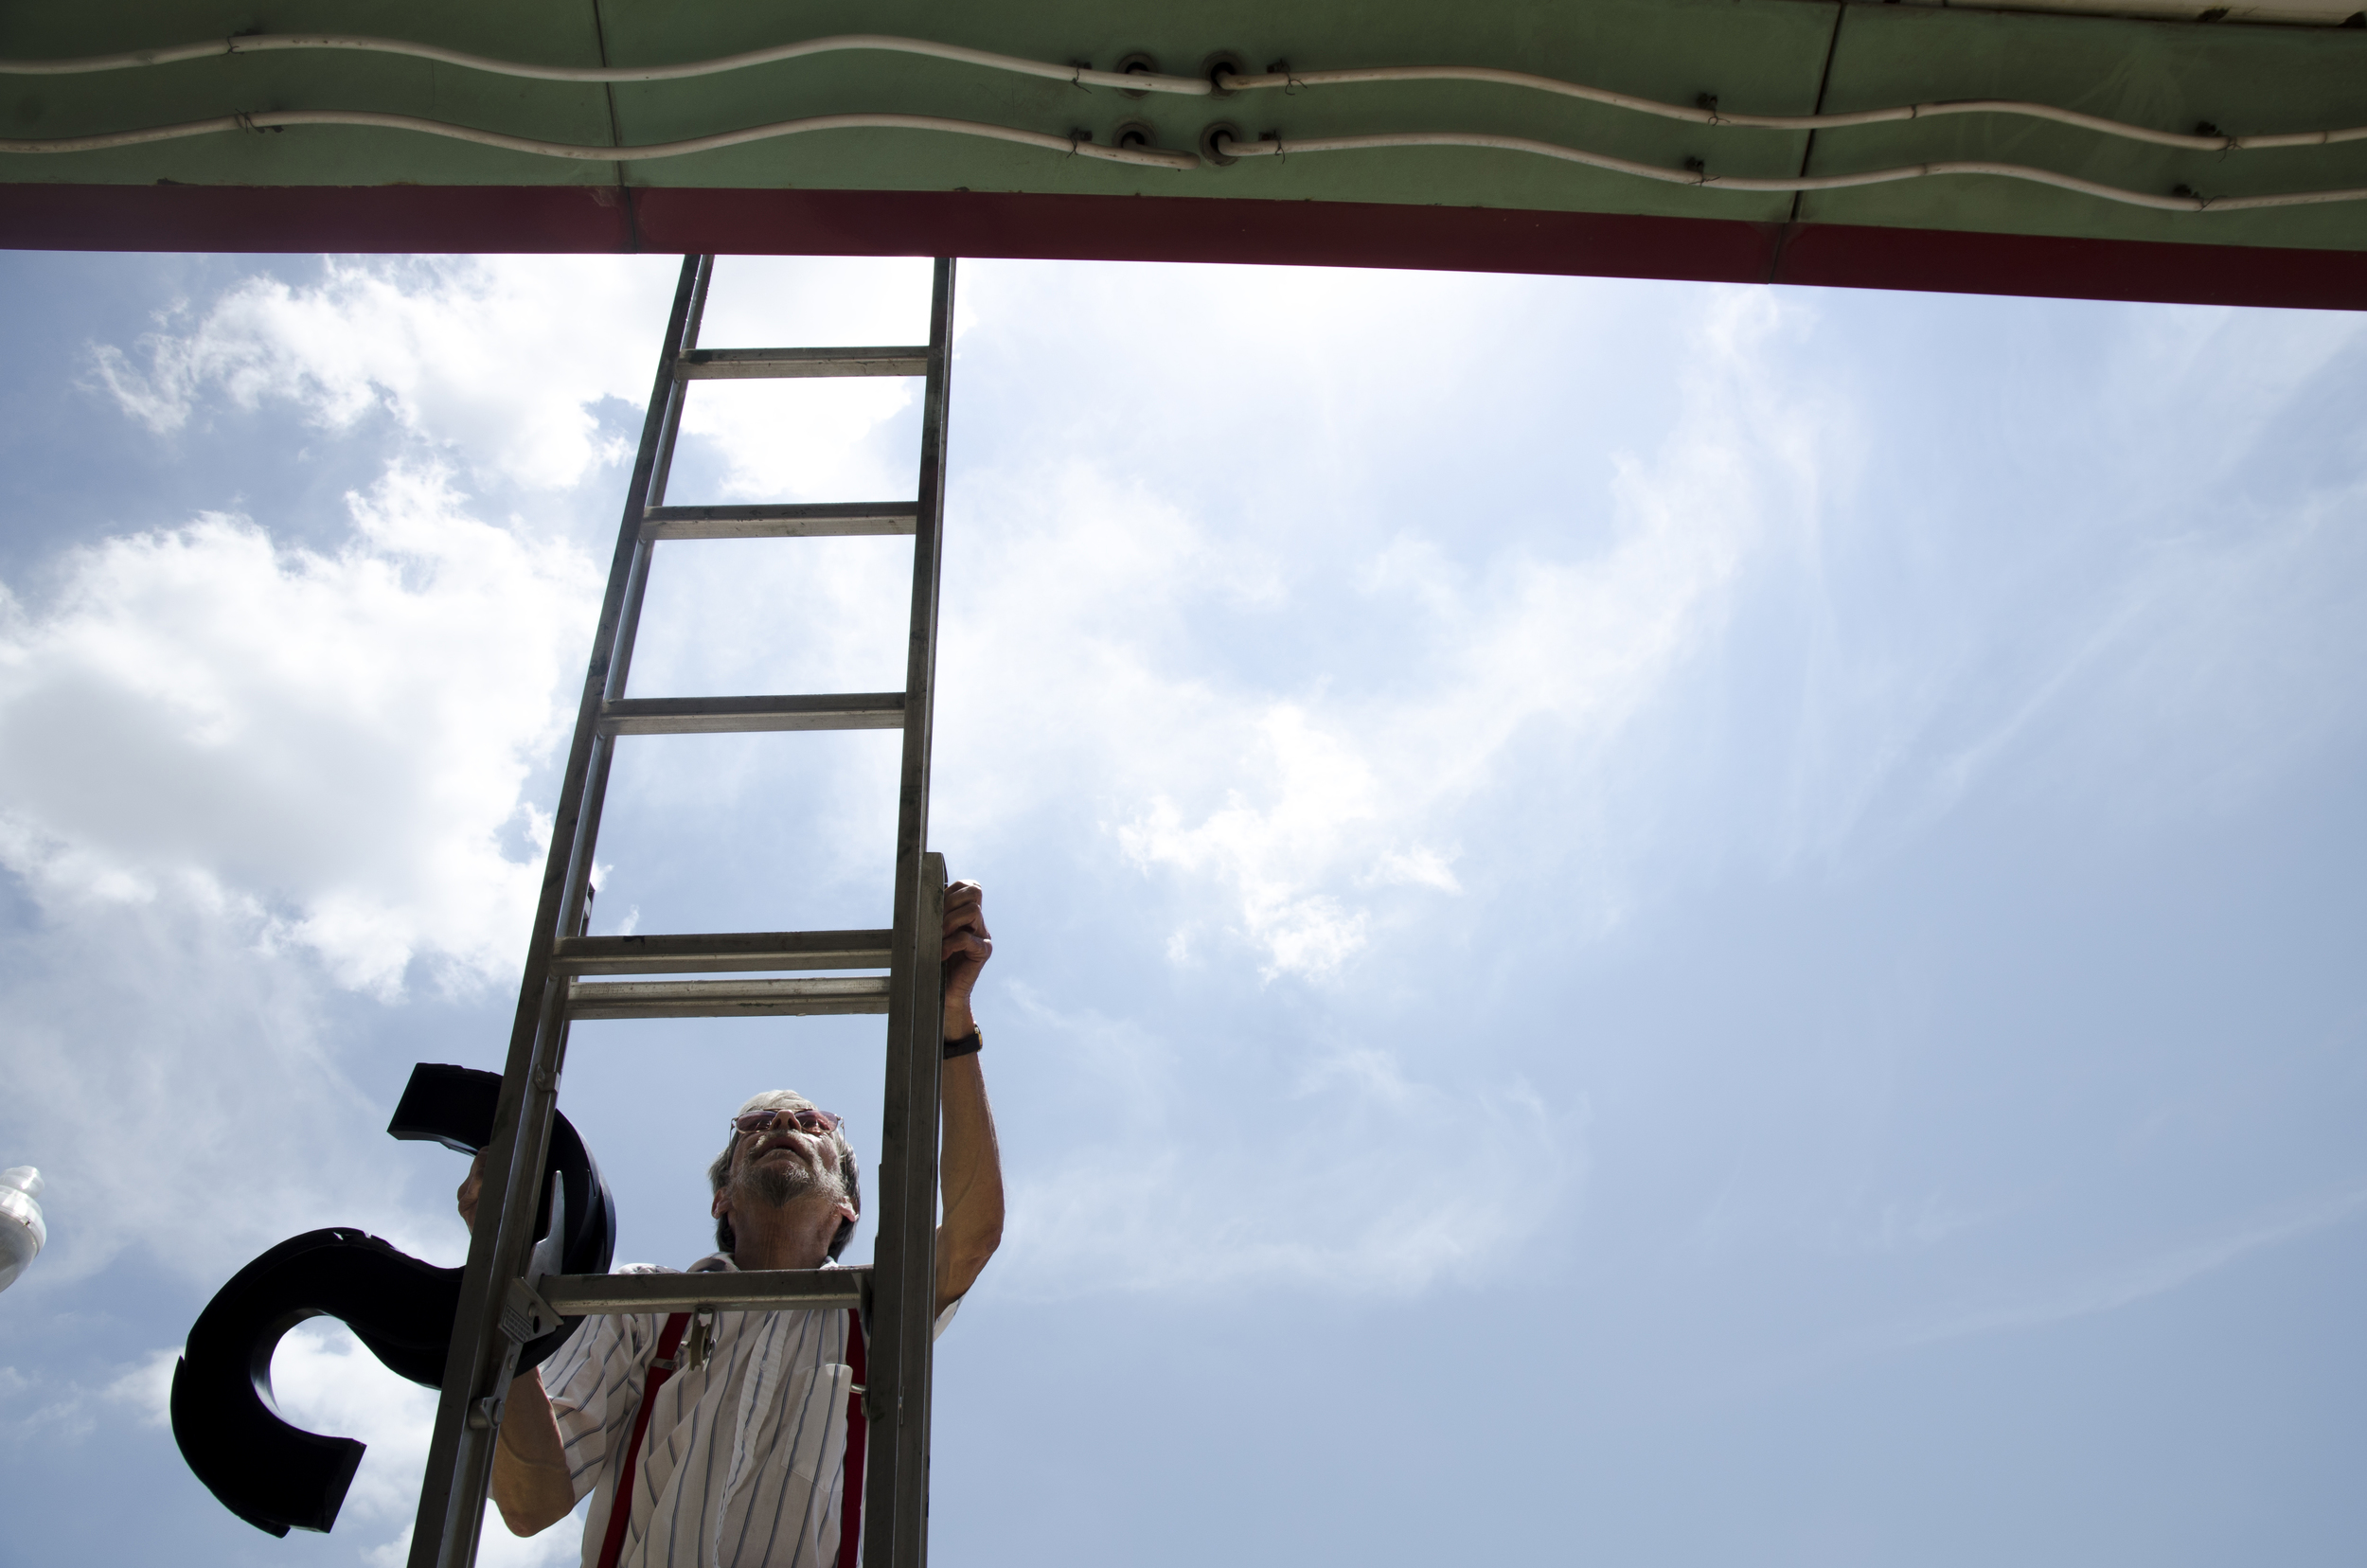 Dennis Welch, the custodian for Campus Theatre, climbs a ladder to change the marquee in Denton, Texas.